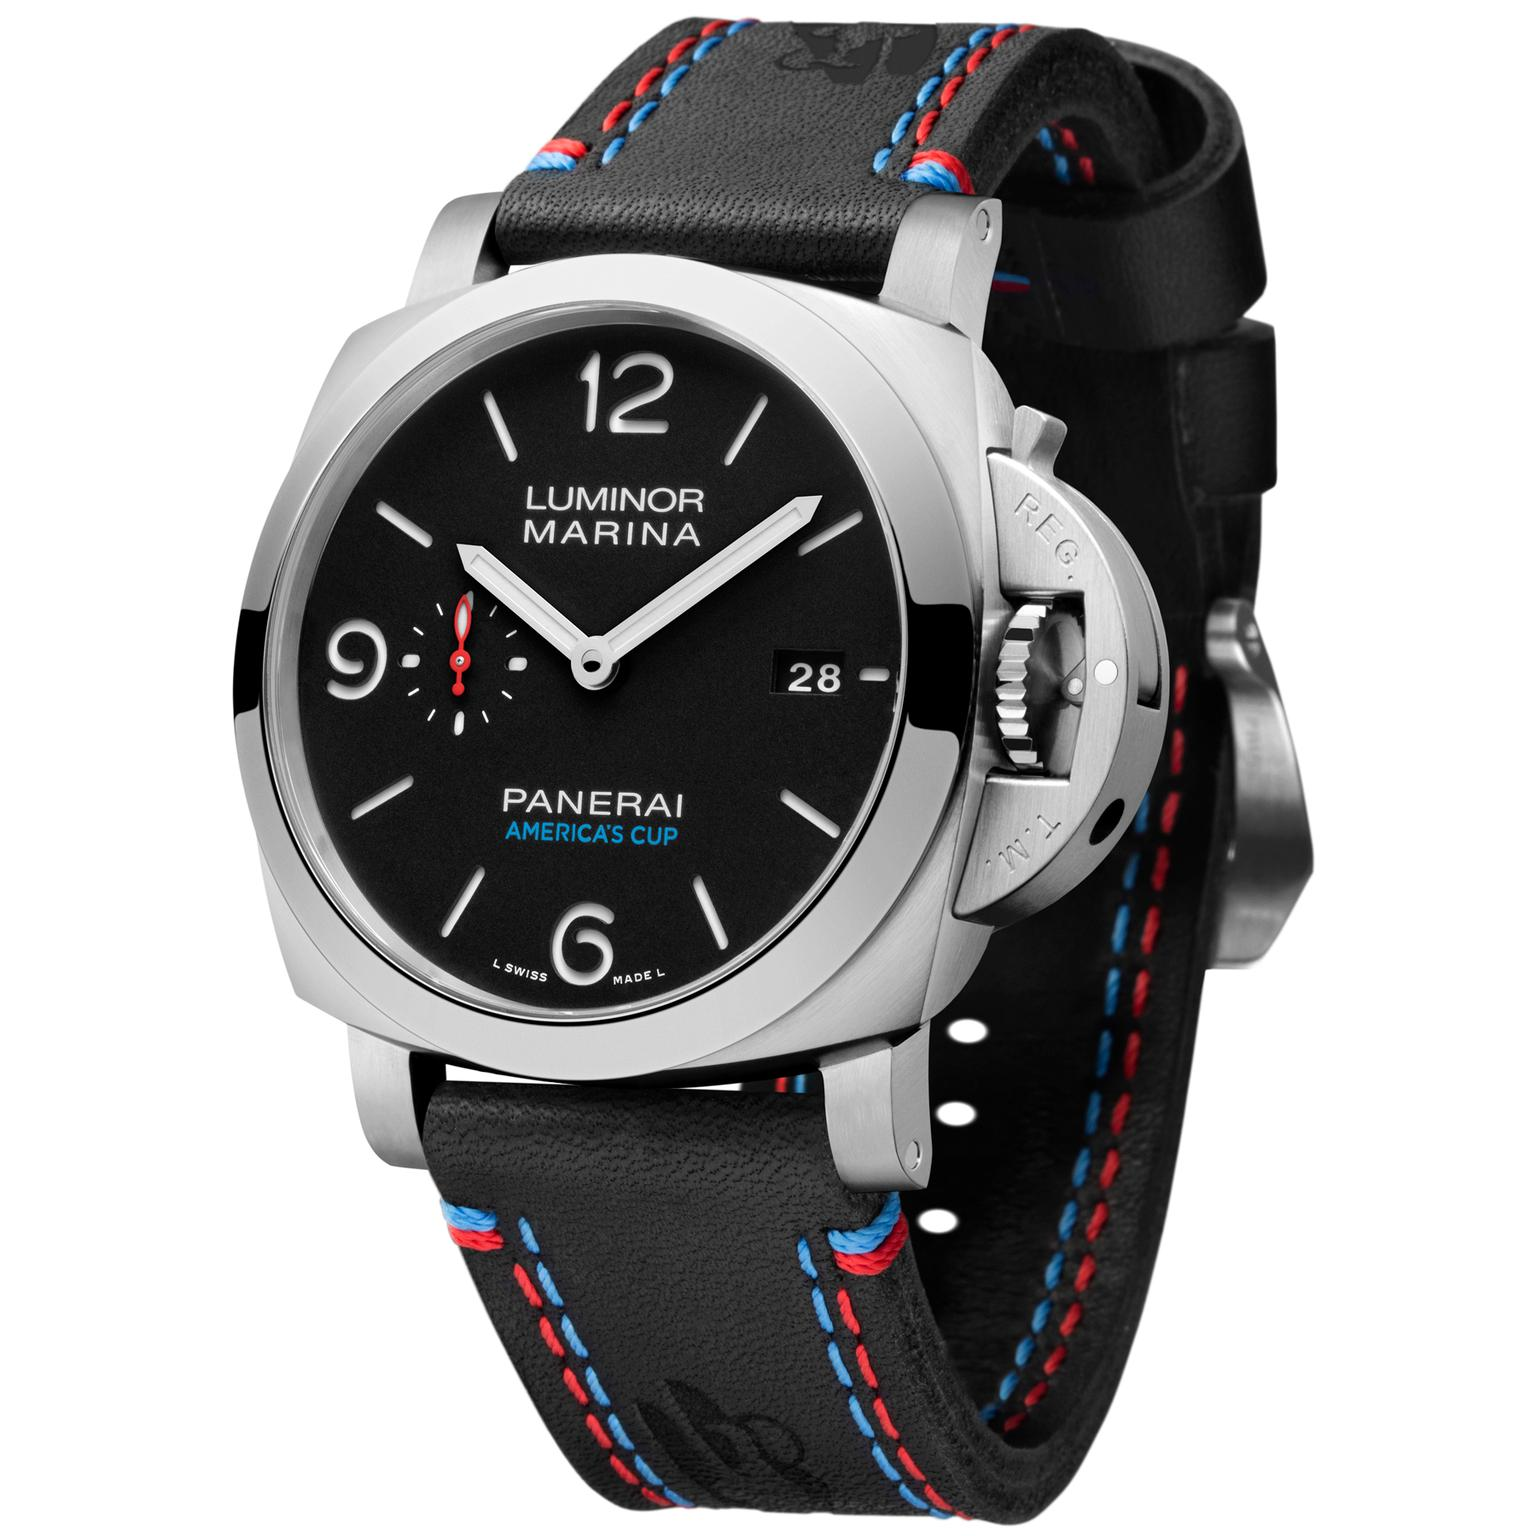 Panerai Luminor Marina 1950 America's Cup 3 Days Automatic Acciaio watch